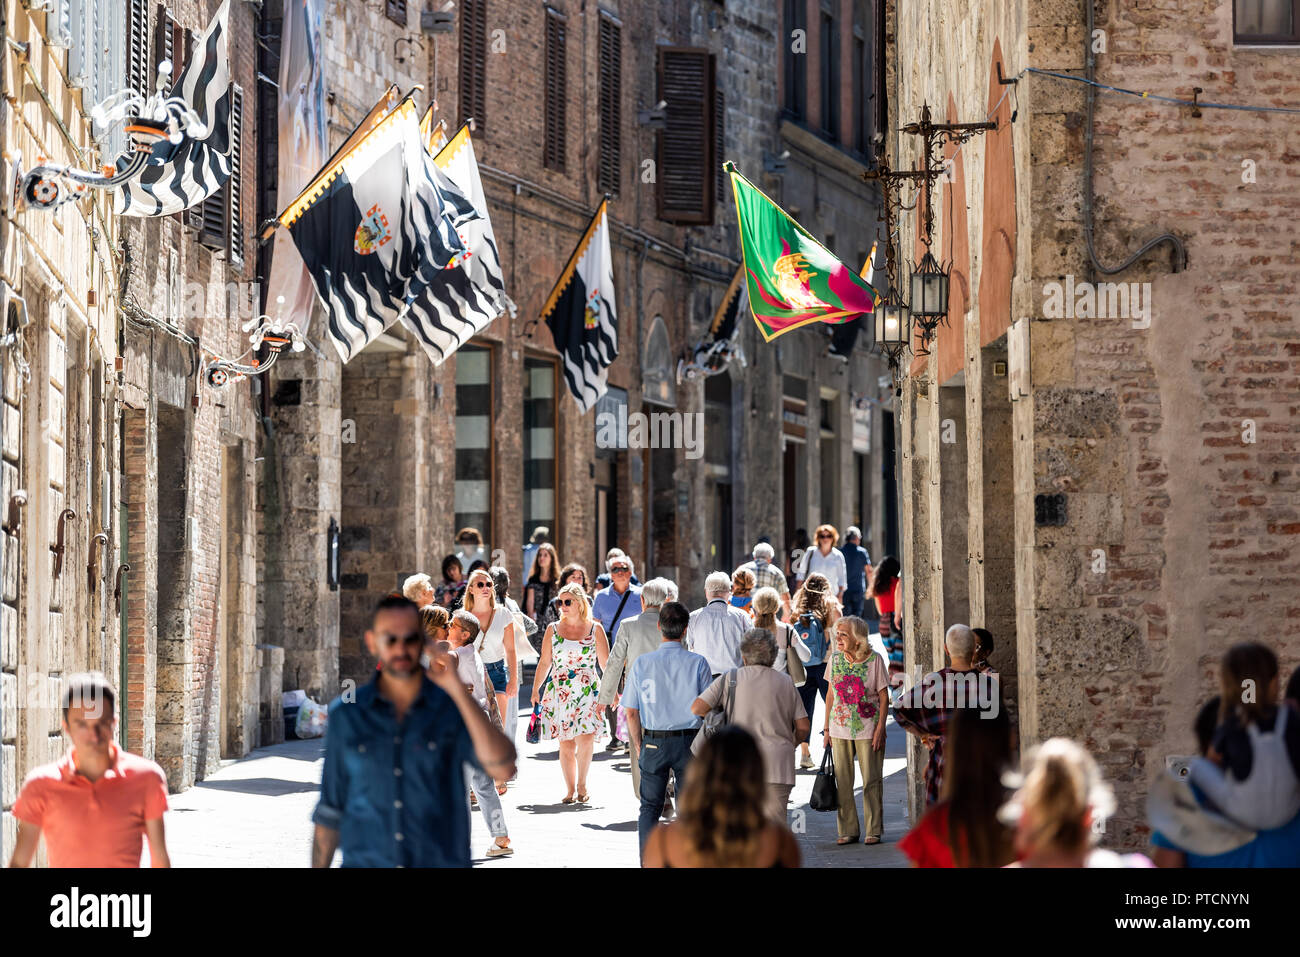 Siena, Italy - August 27, 2018: Street in historic medieval old town village in Tuscany with shopping stores, crowd of many people tourists walking, f Stock Photo